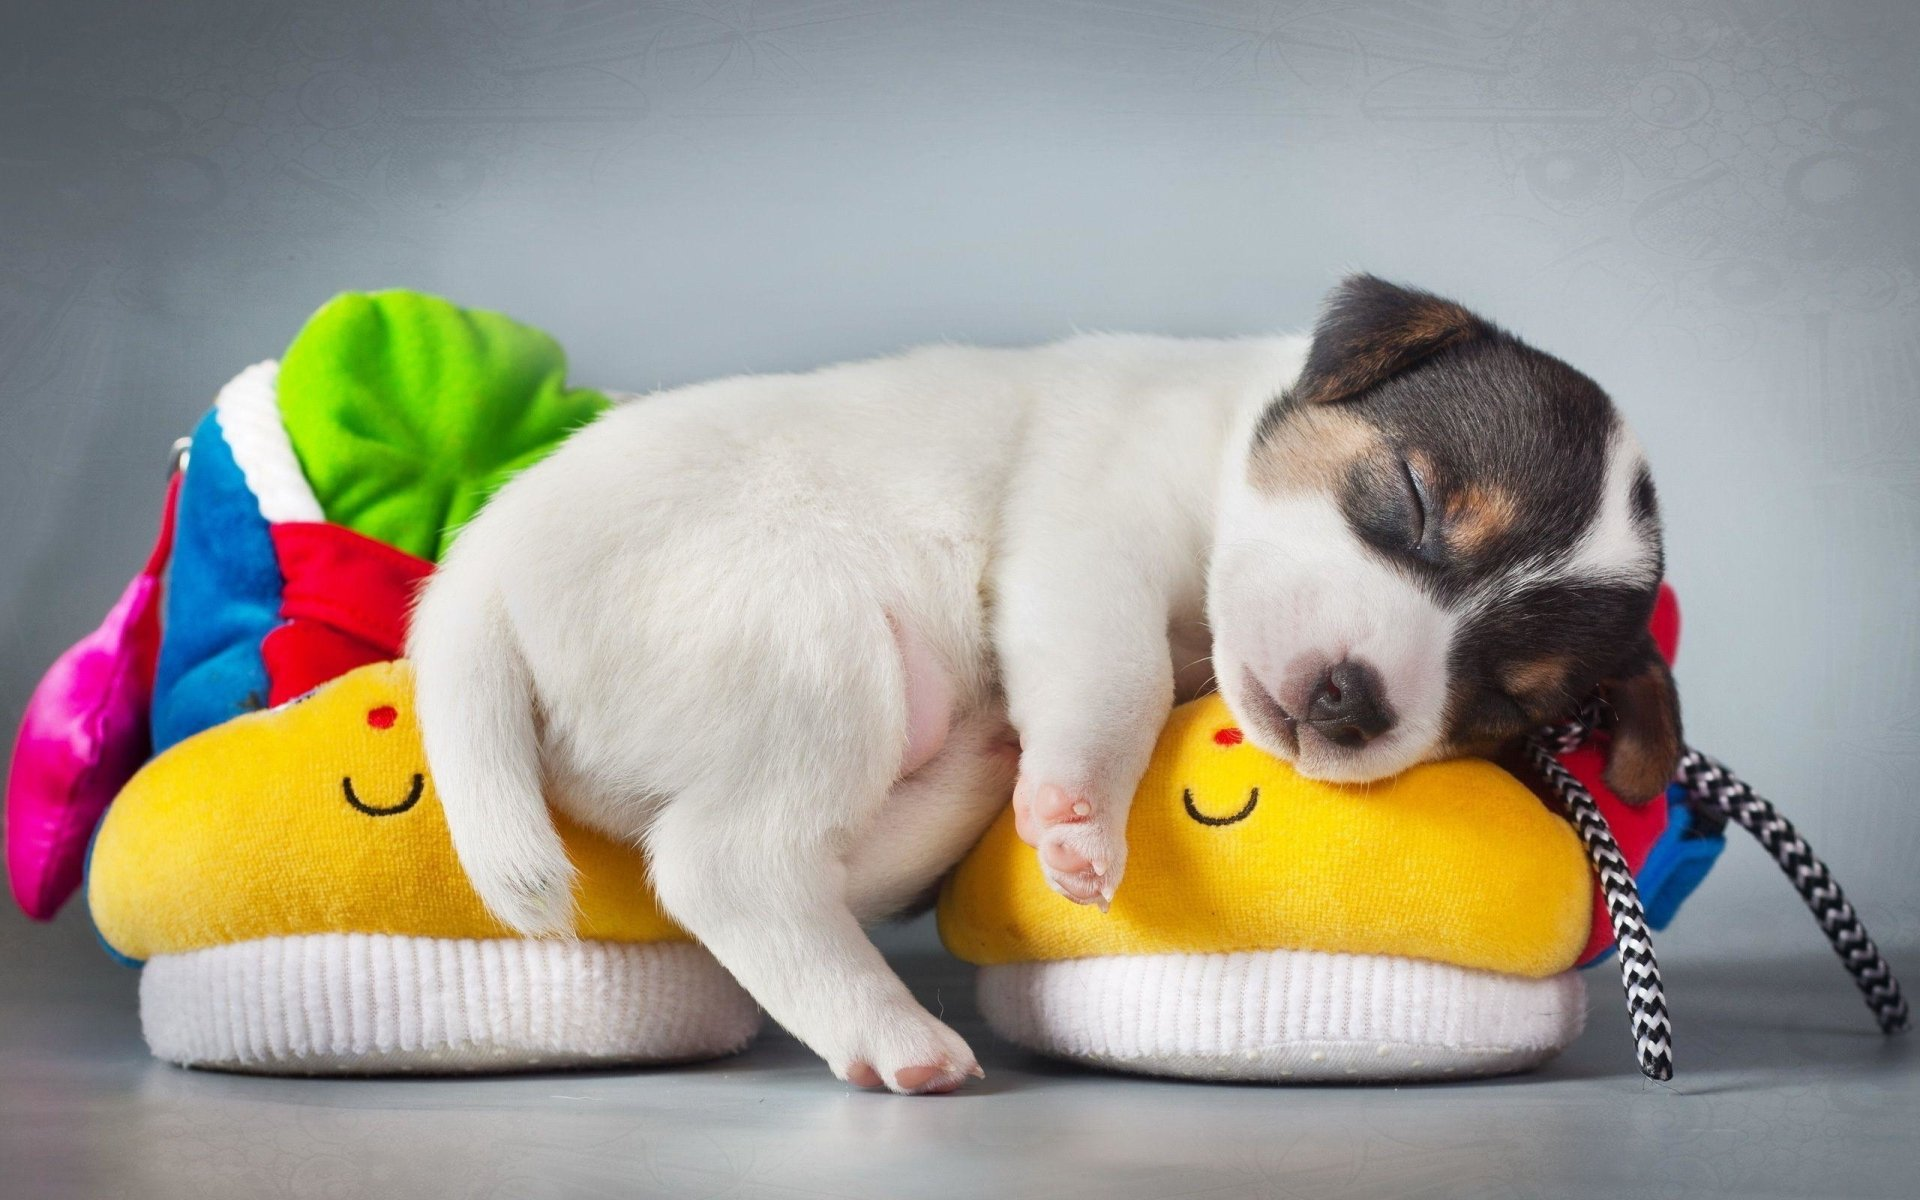 Animal - Puppy  Animal Dog Sleeping Pet Cute Baby Animal Wallpaper